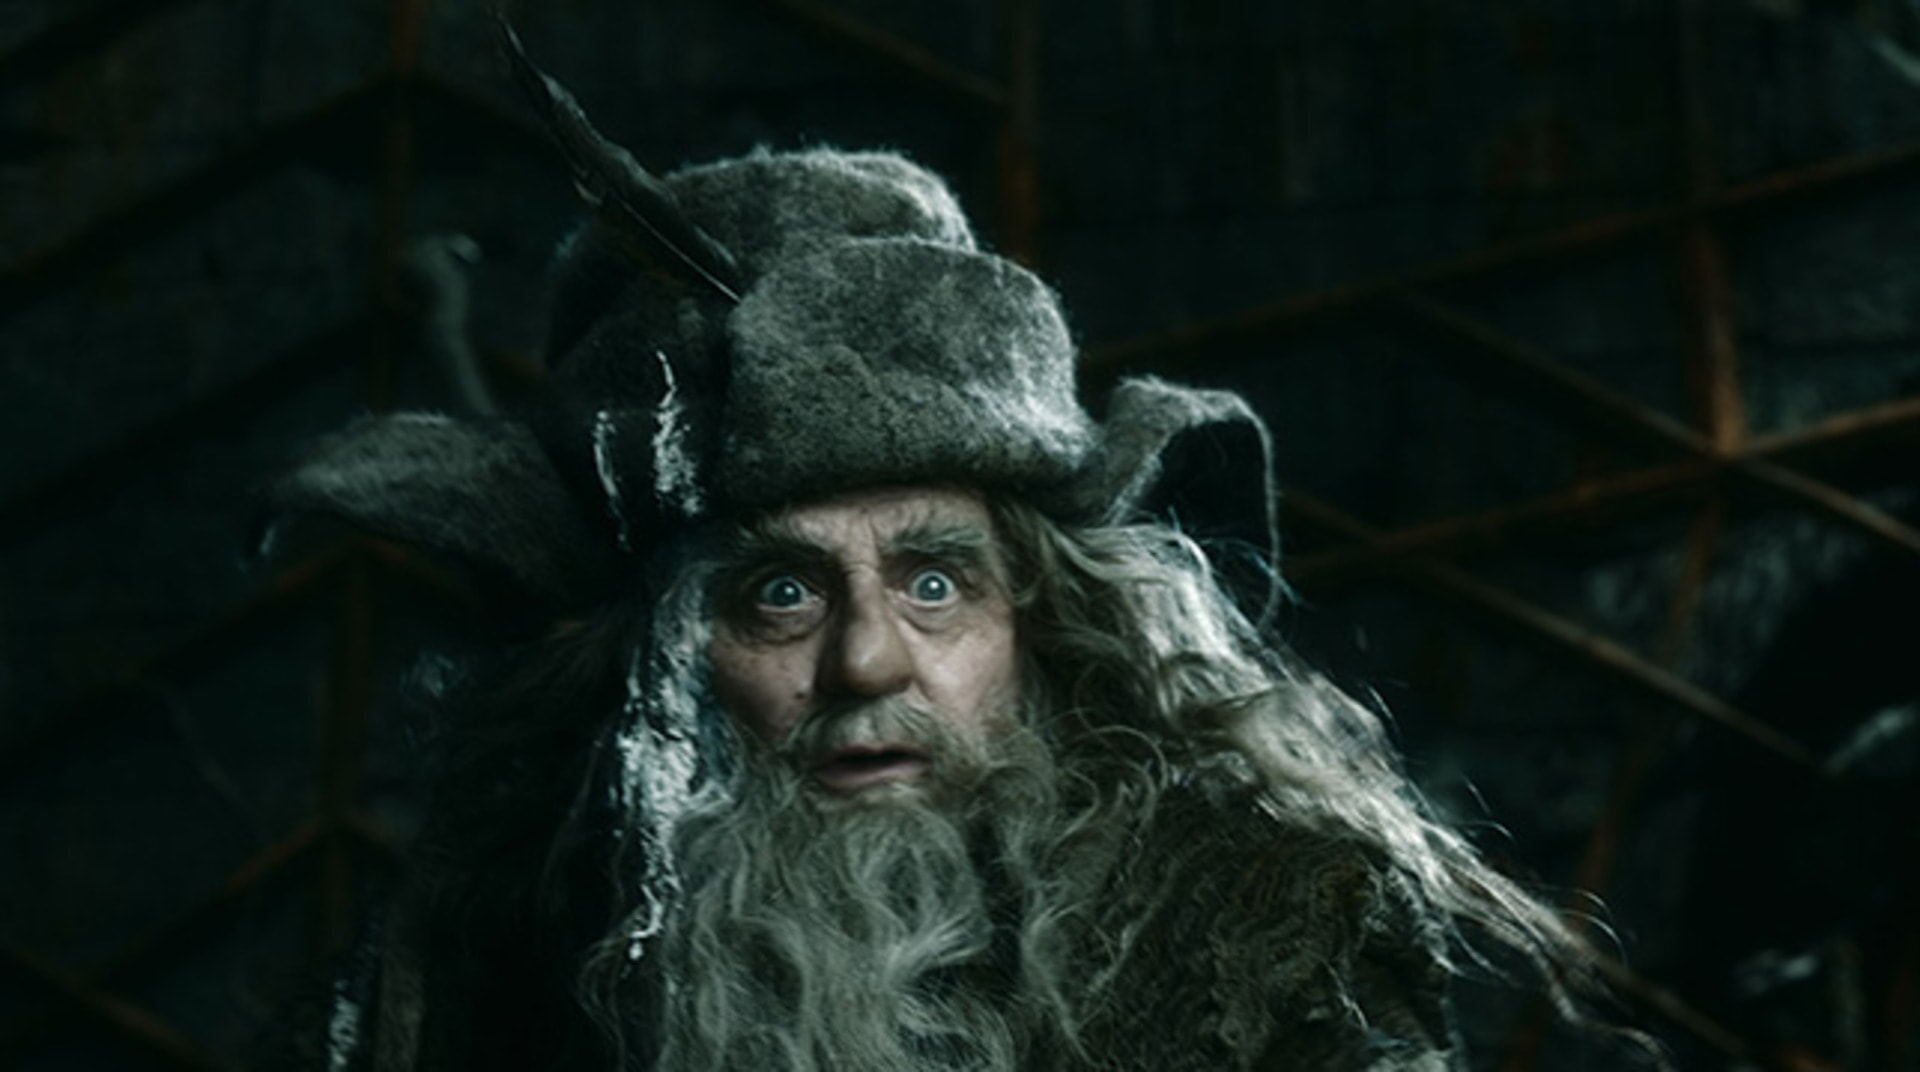 The Hobbit: The Battle of the Five Armies - Image 36